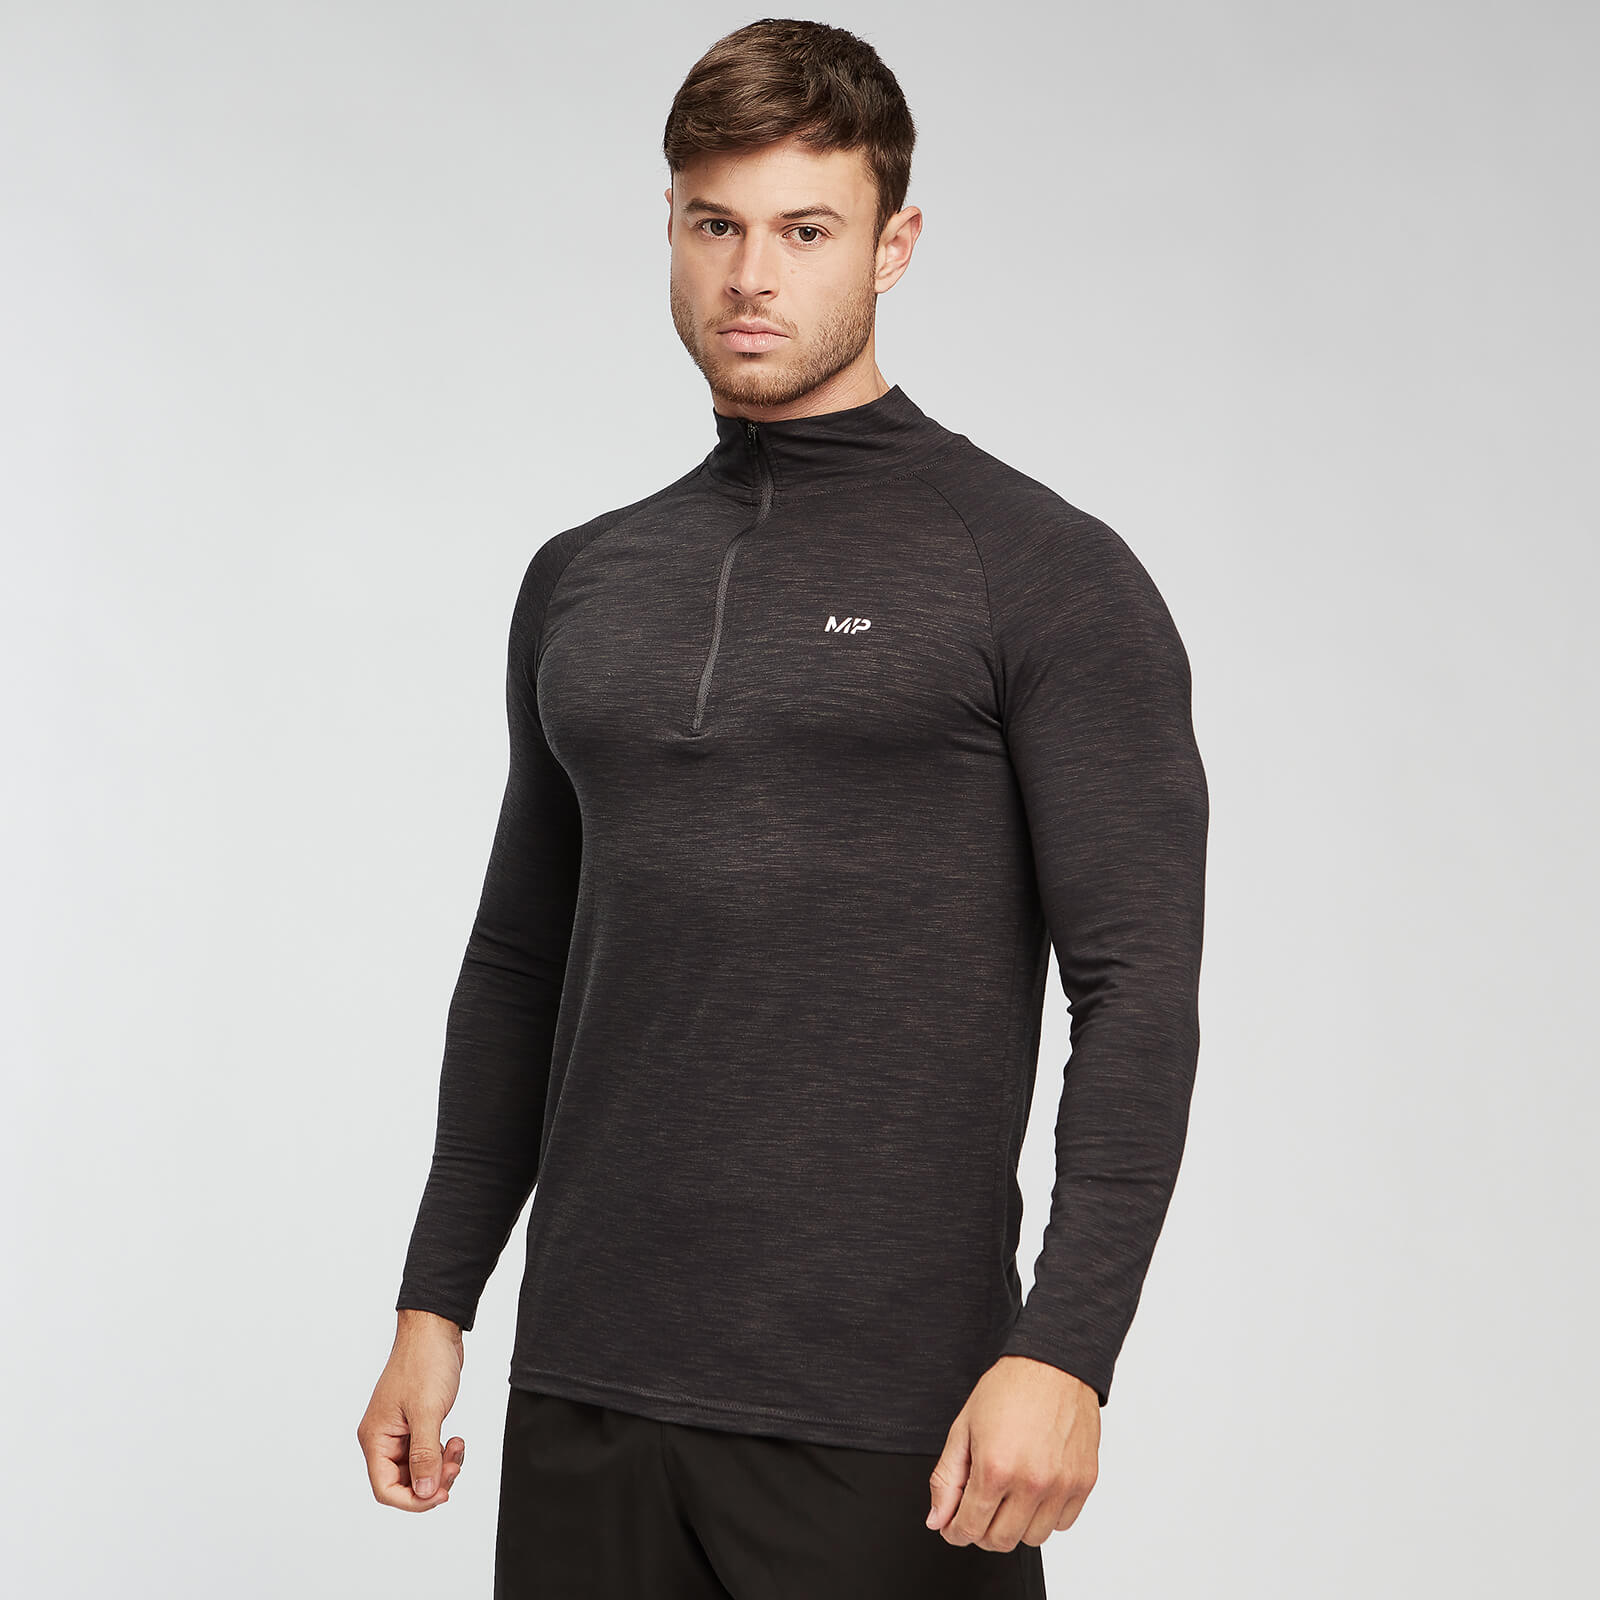 MP Performance 1/4 Zip - Noir et Gris - XL